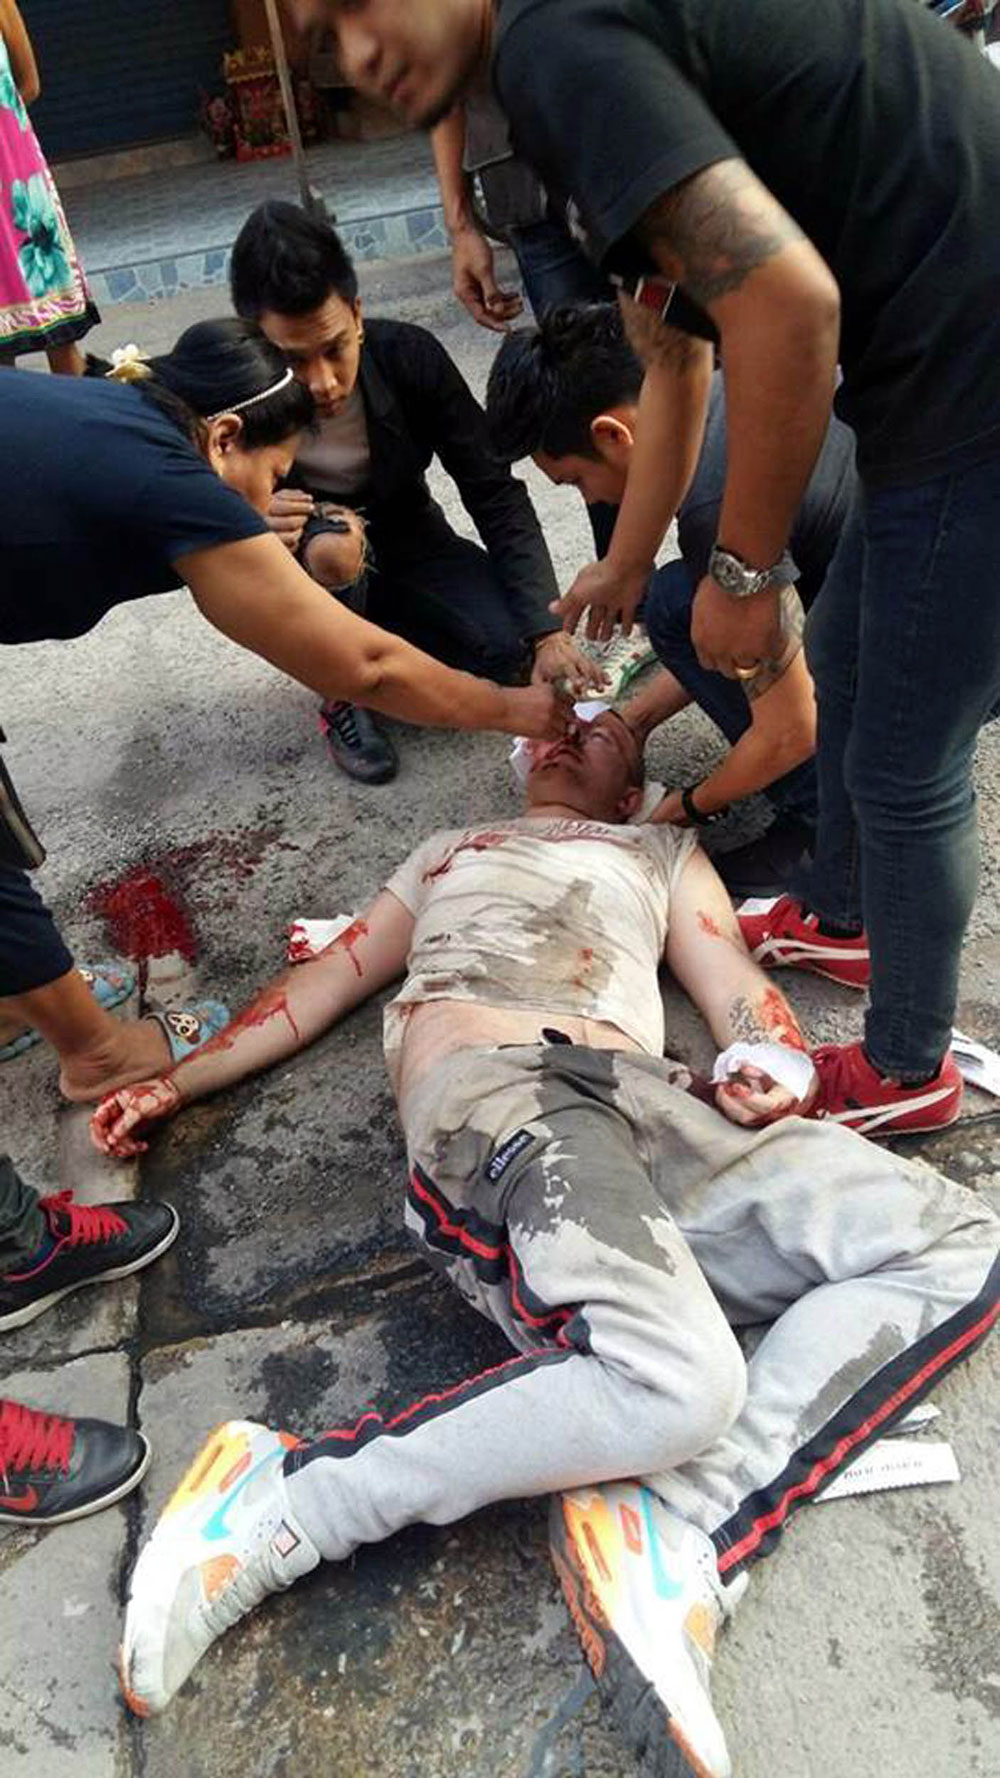 Paul was pictured lying on the ground covered in blood